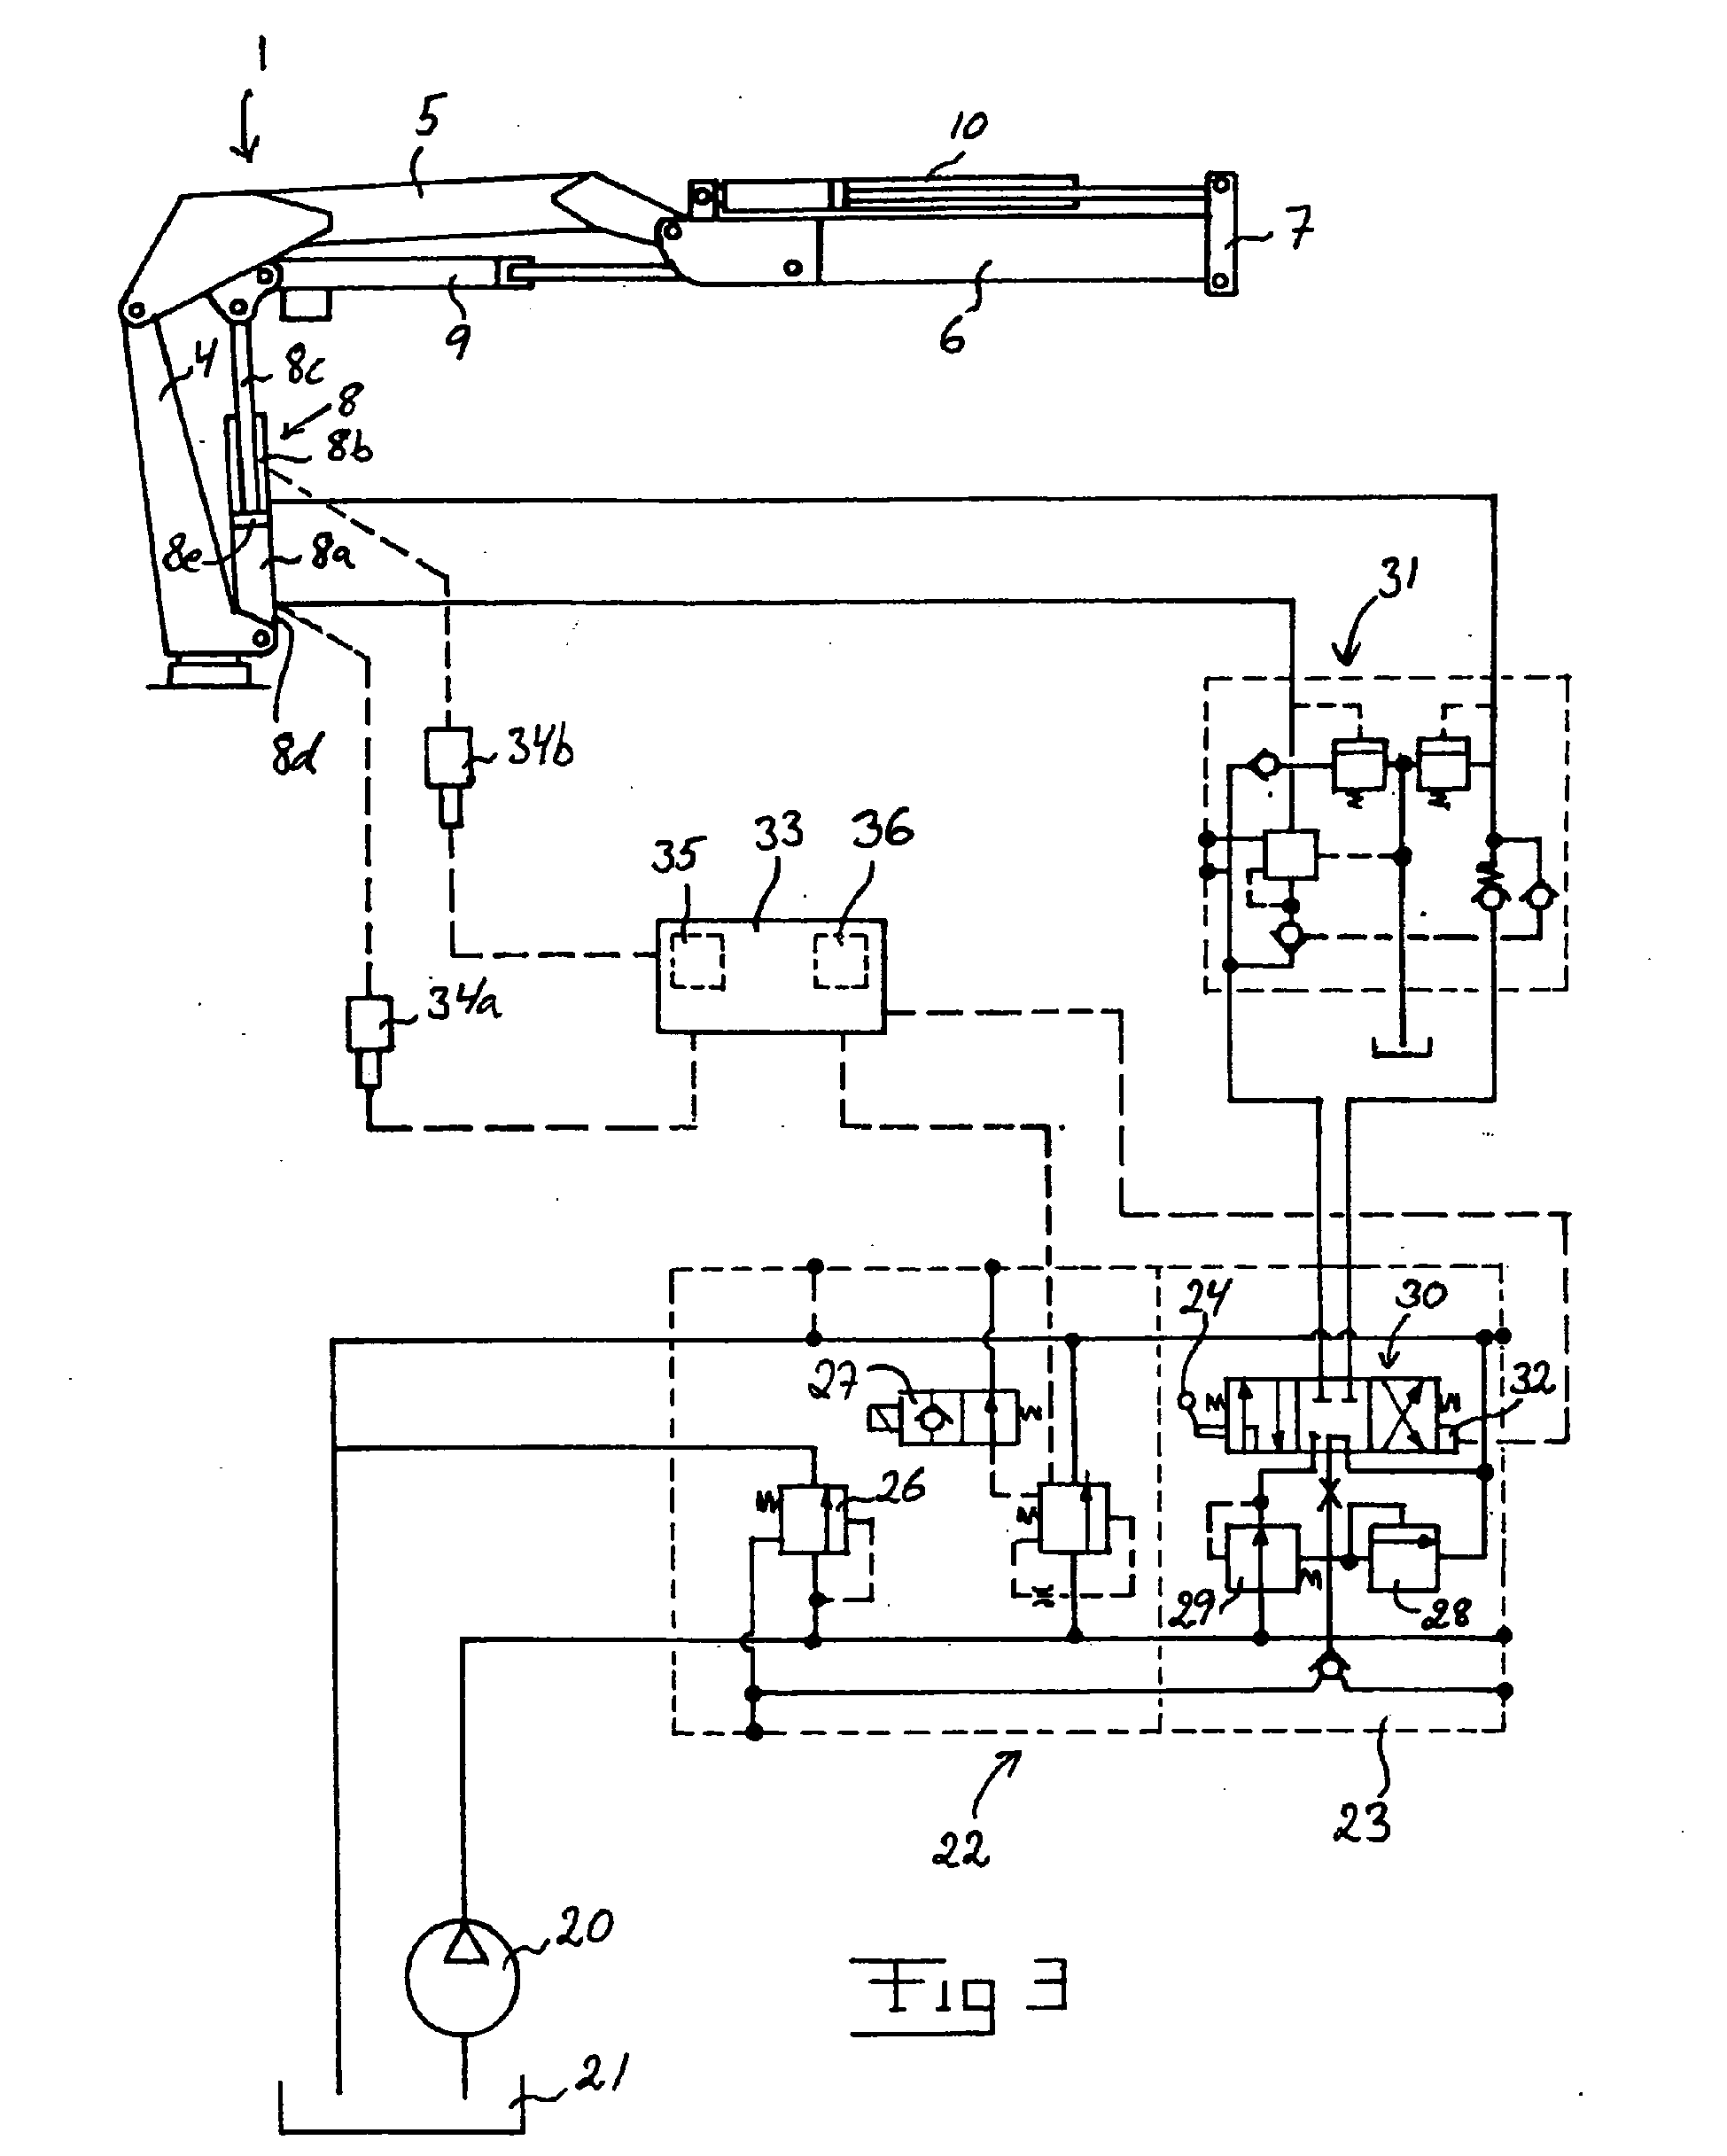 diagrams wiring   1951 willys pickup wiring diagram